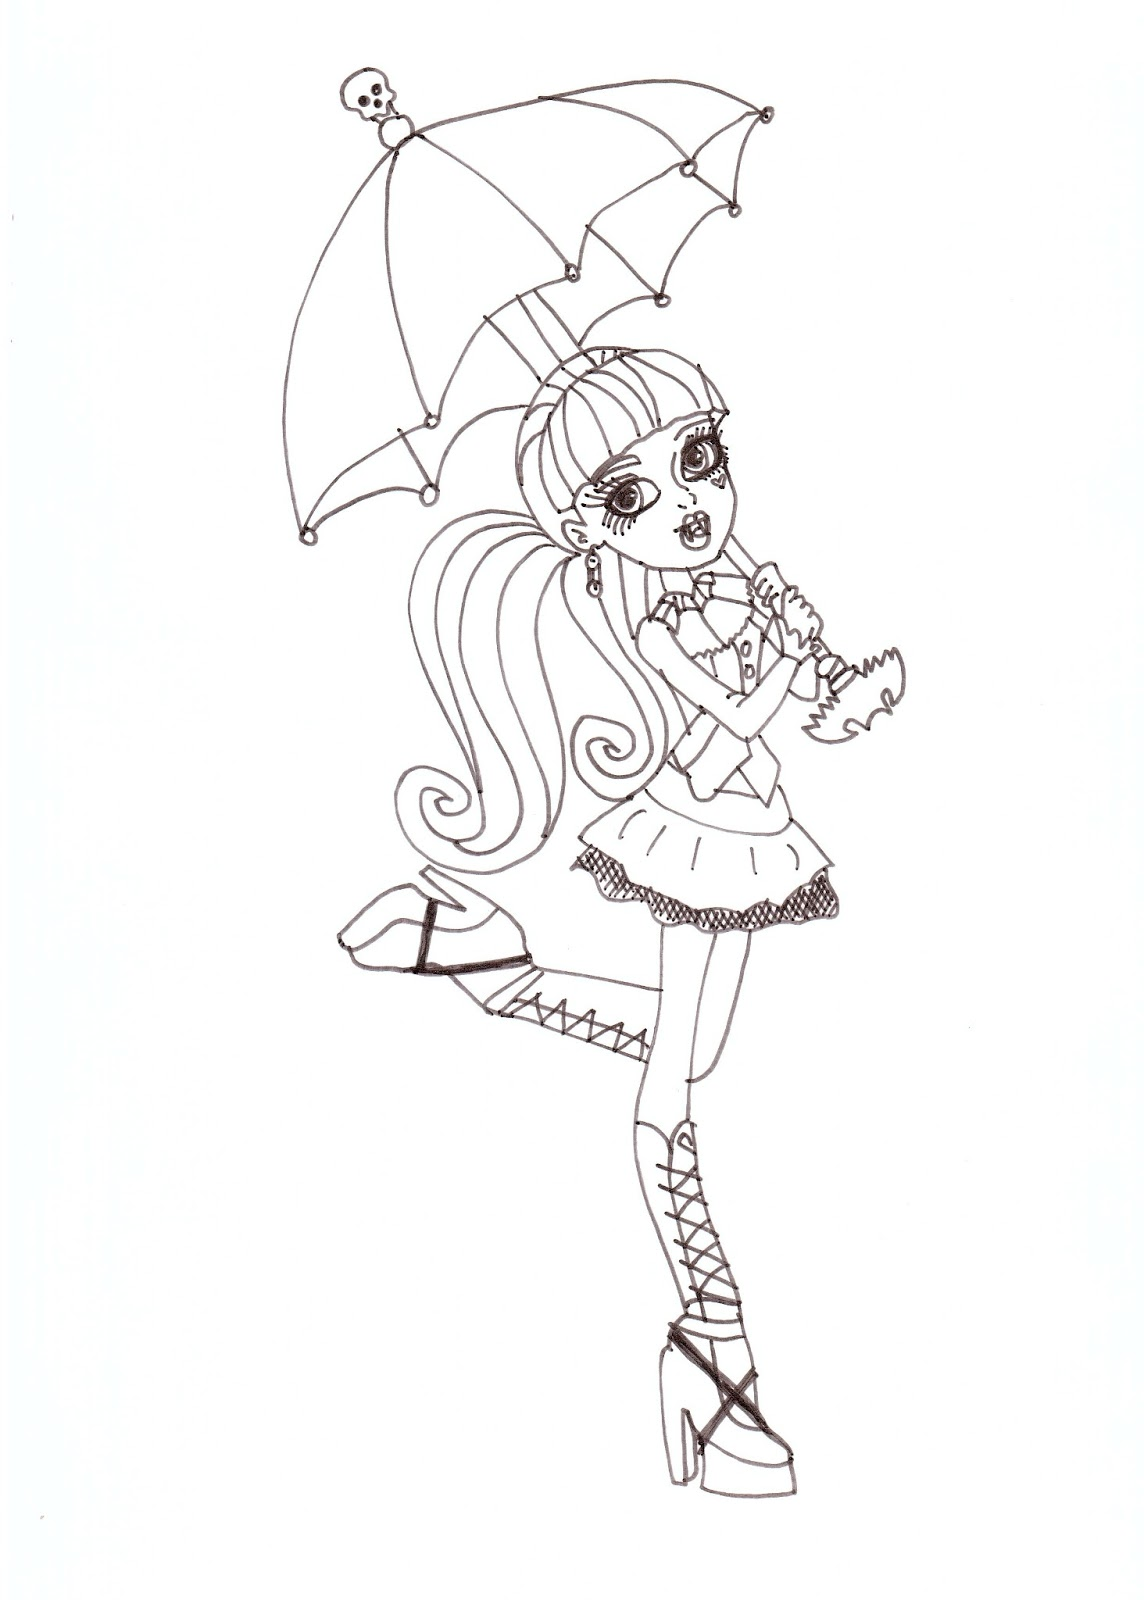 Free Printable Monster High Coloring Pages: Draculaura